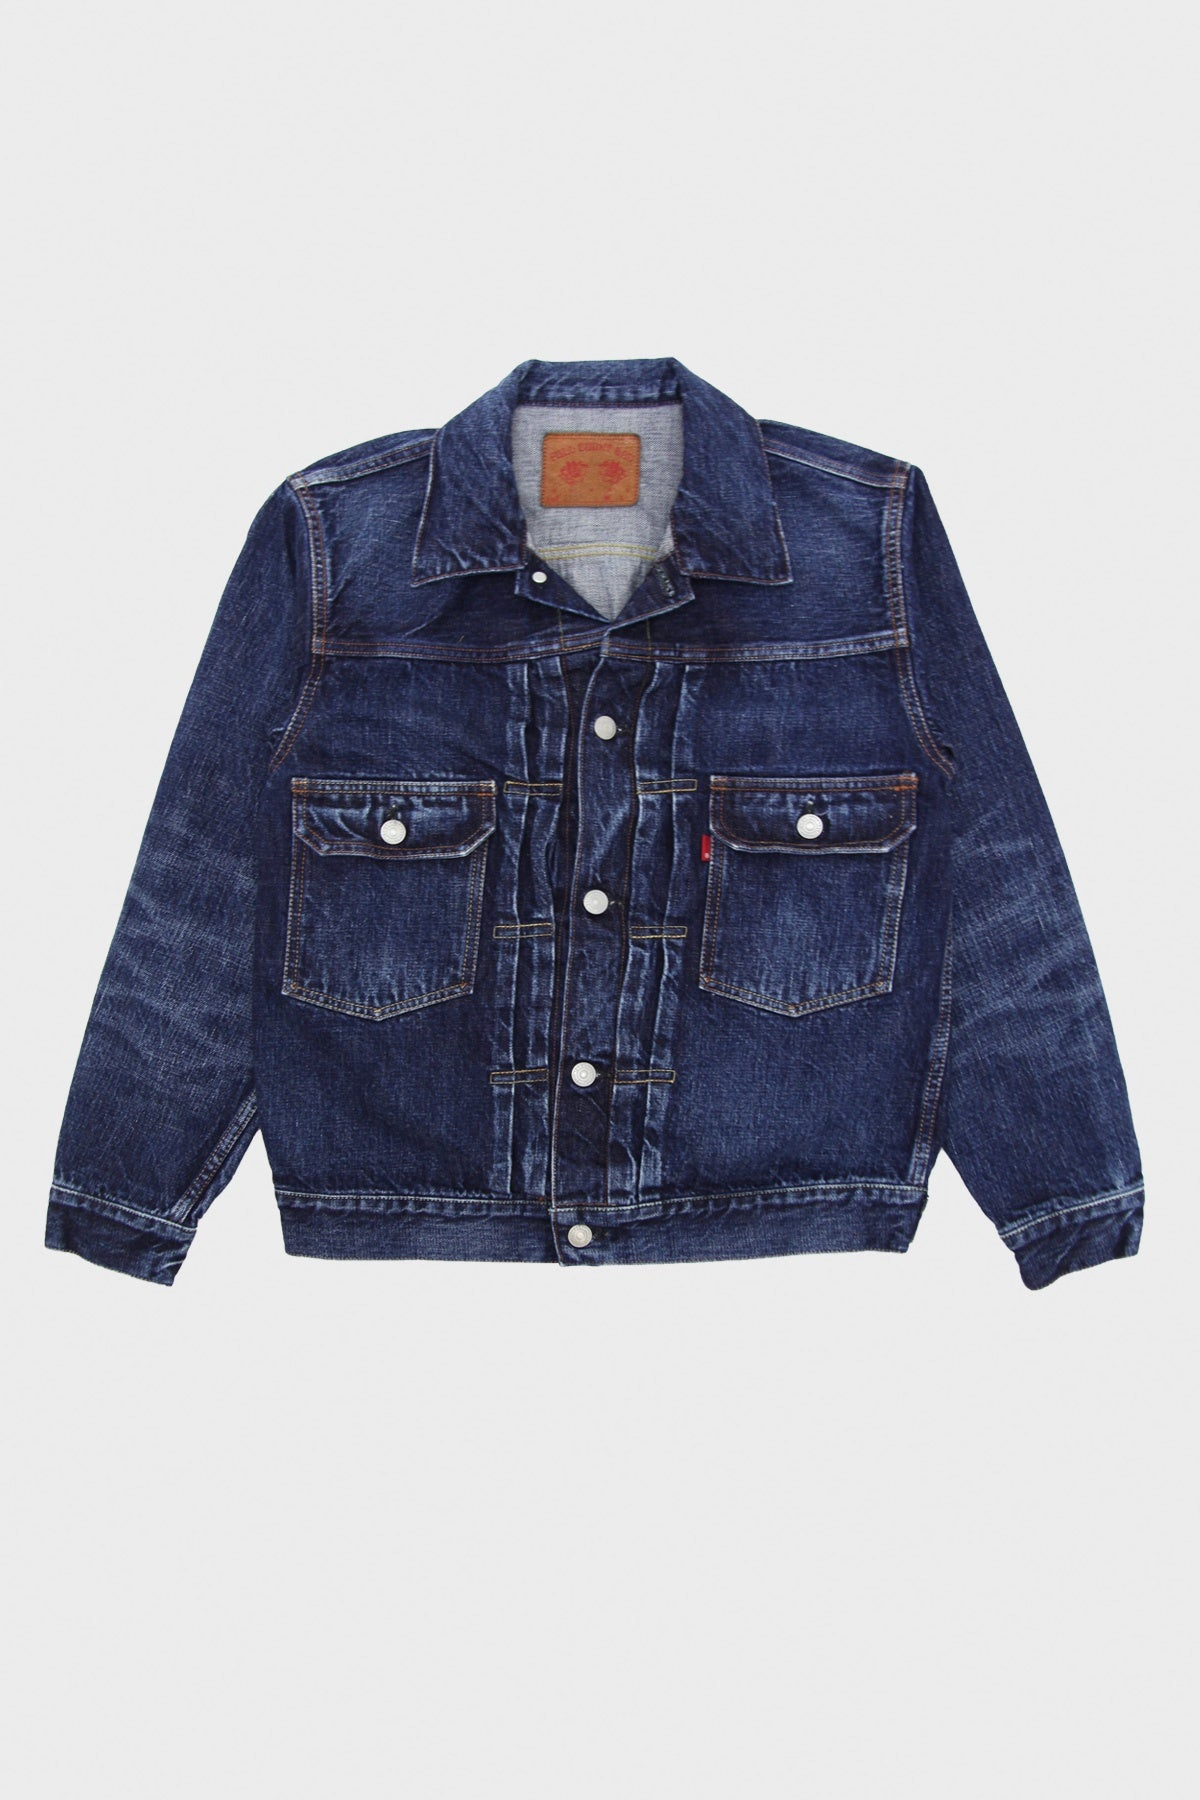 Full Count - Half-Way There Denim Jacket - Indigo - Canoe Club